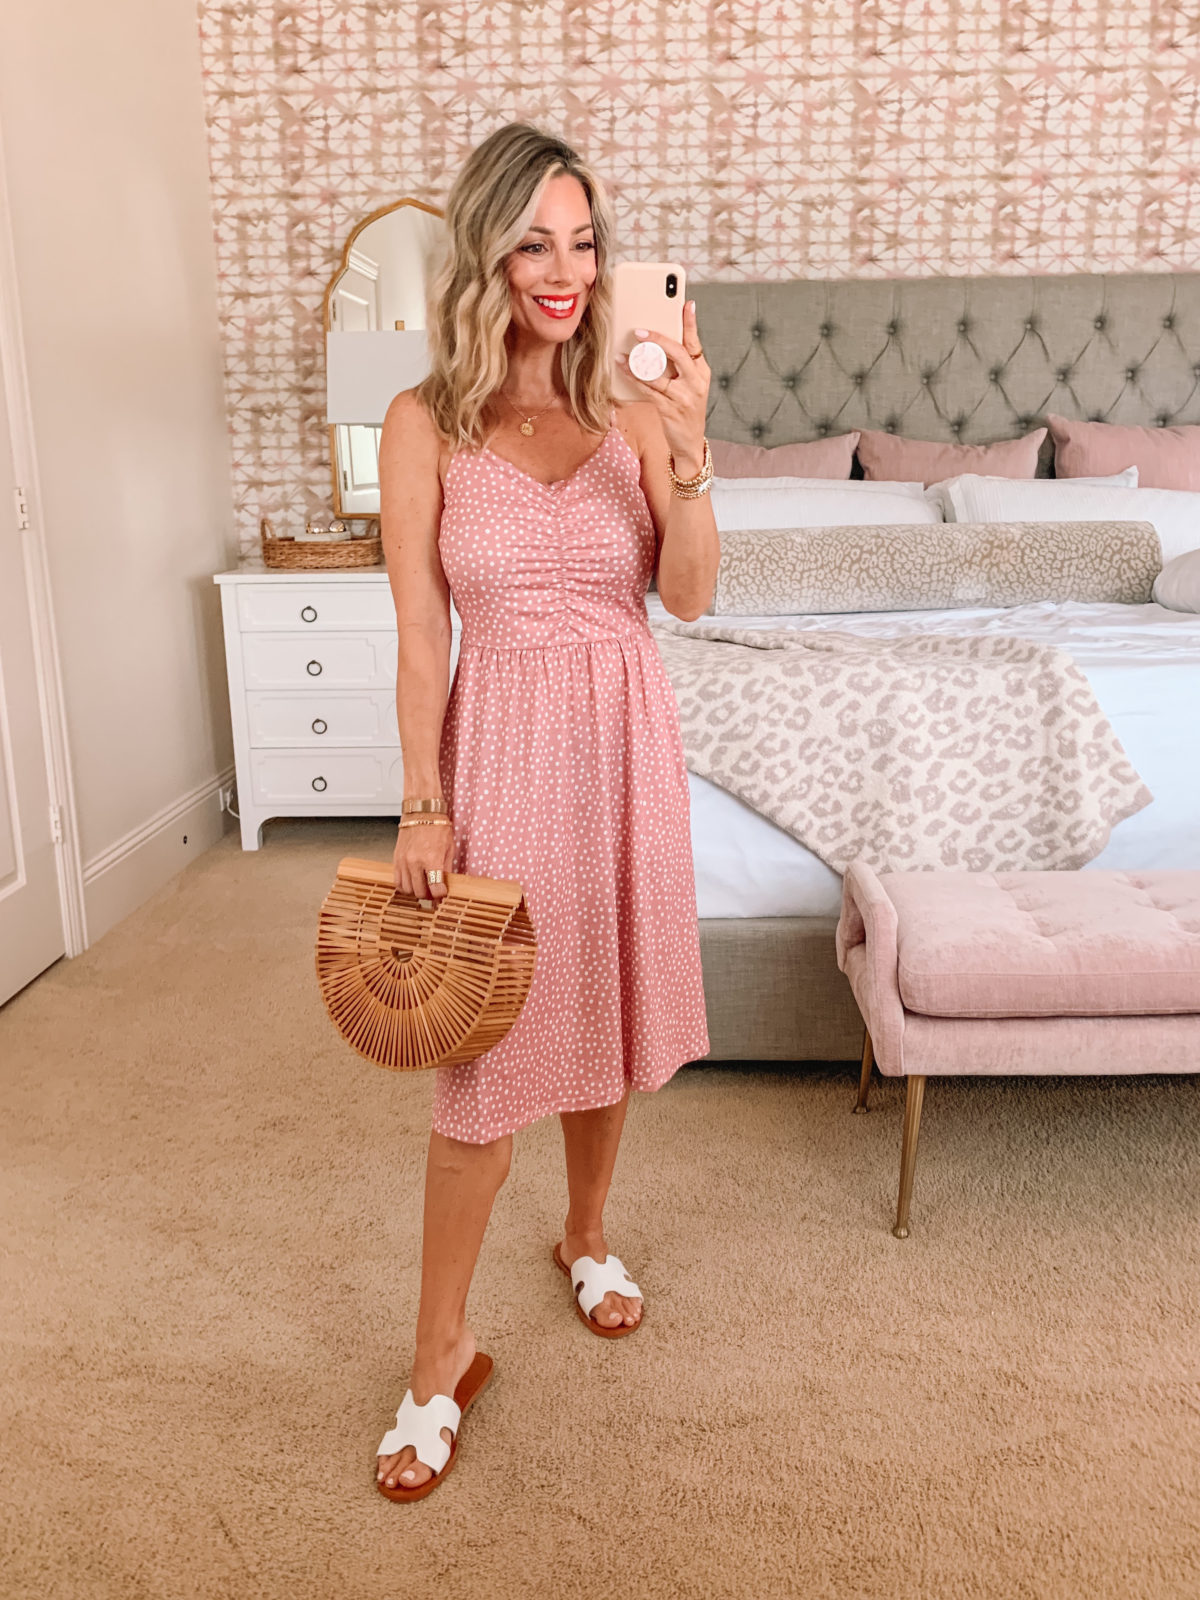 Amazon Fashion Faves, Pink Polka Dot Dress and Sandals with Bamboo Clutch